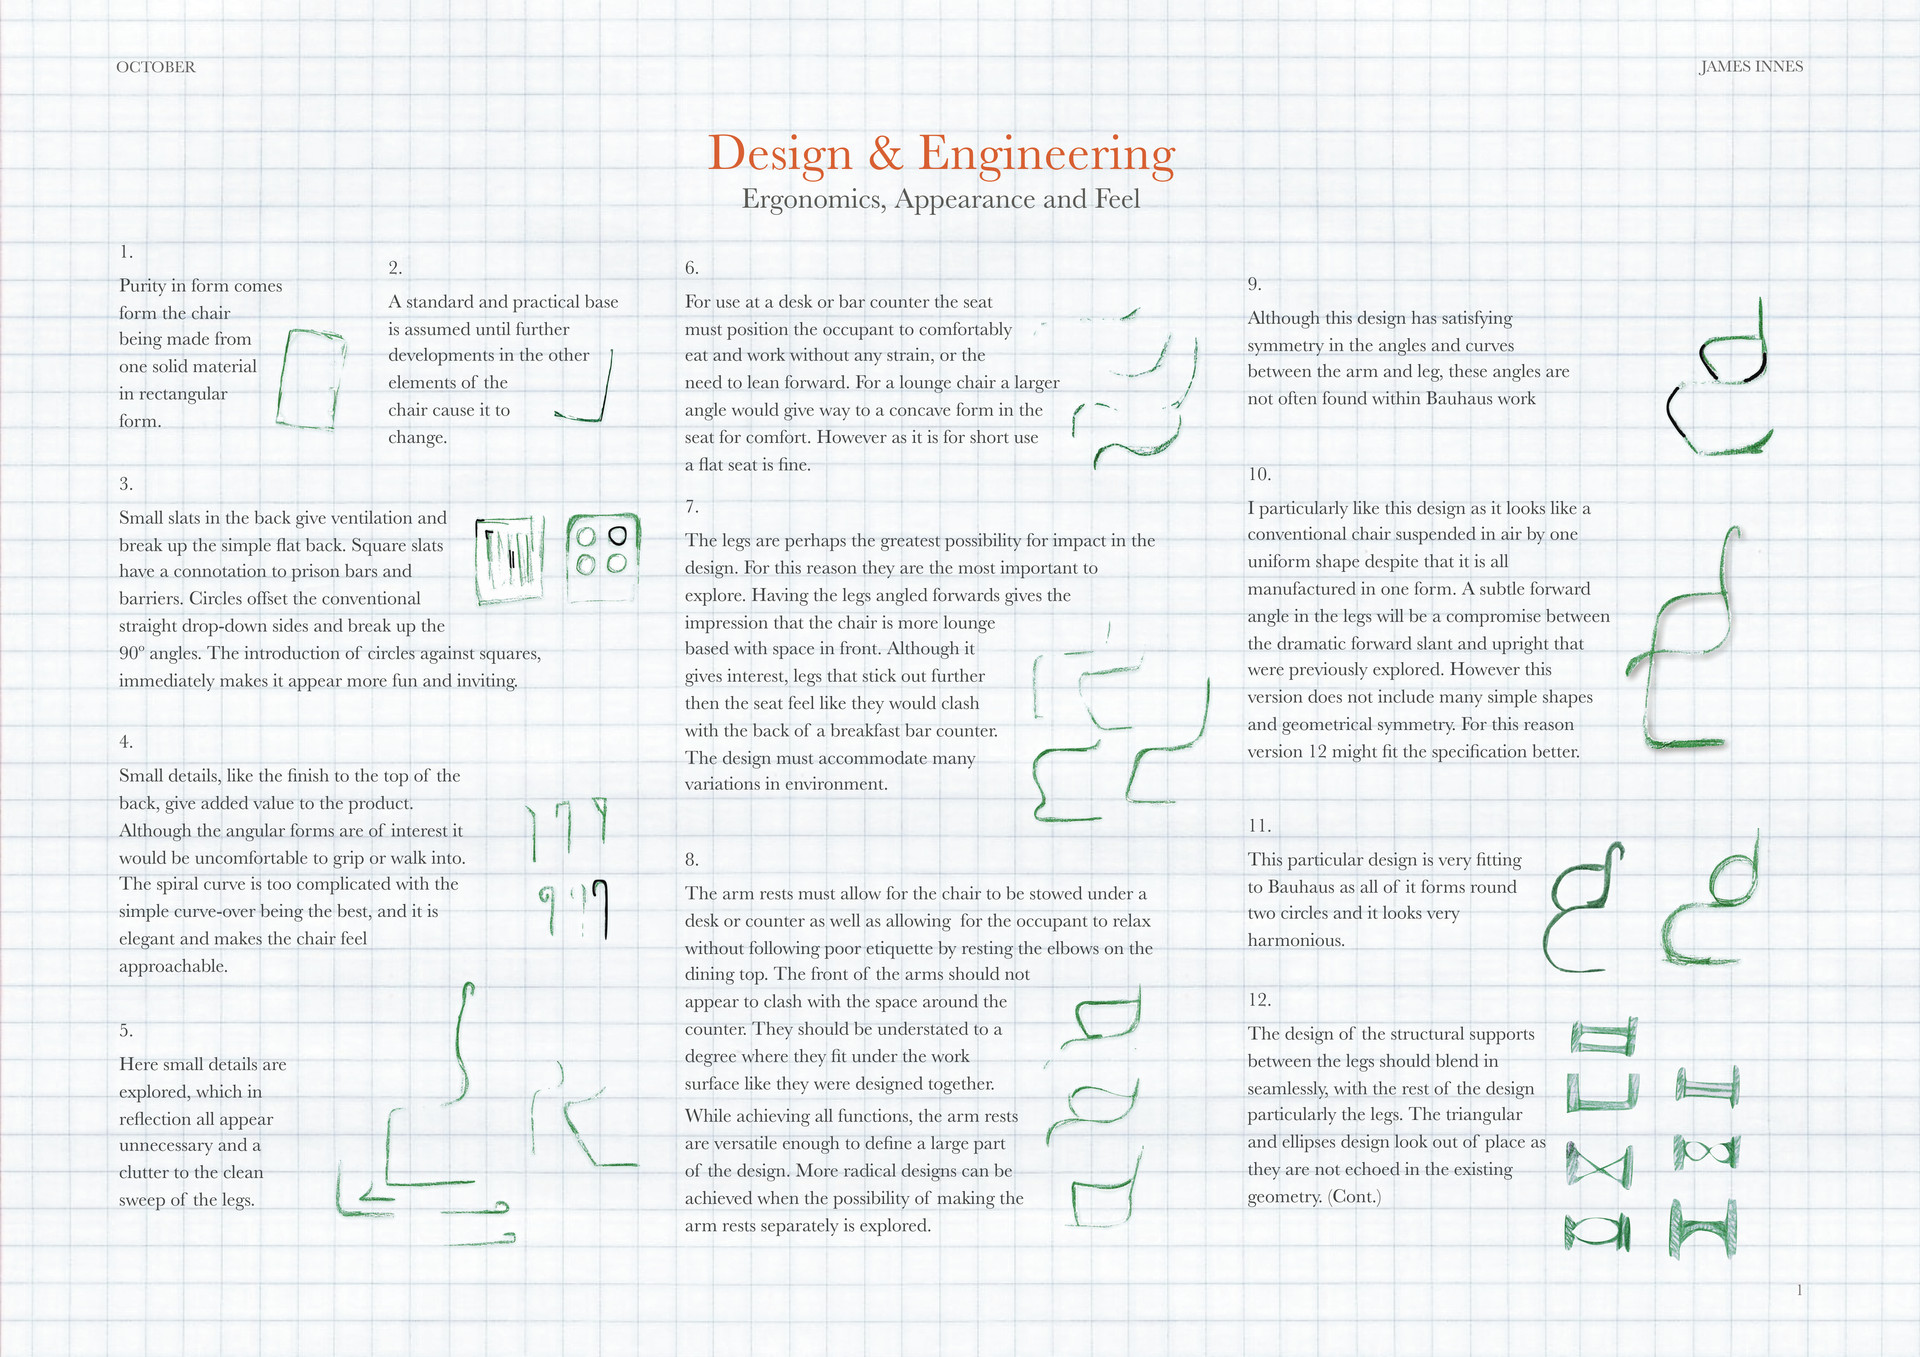 8. Design & Engineering.jpeg